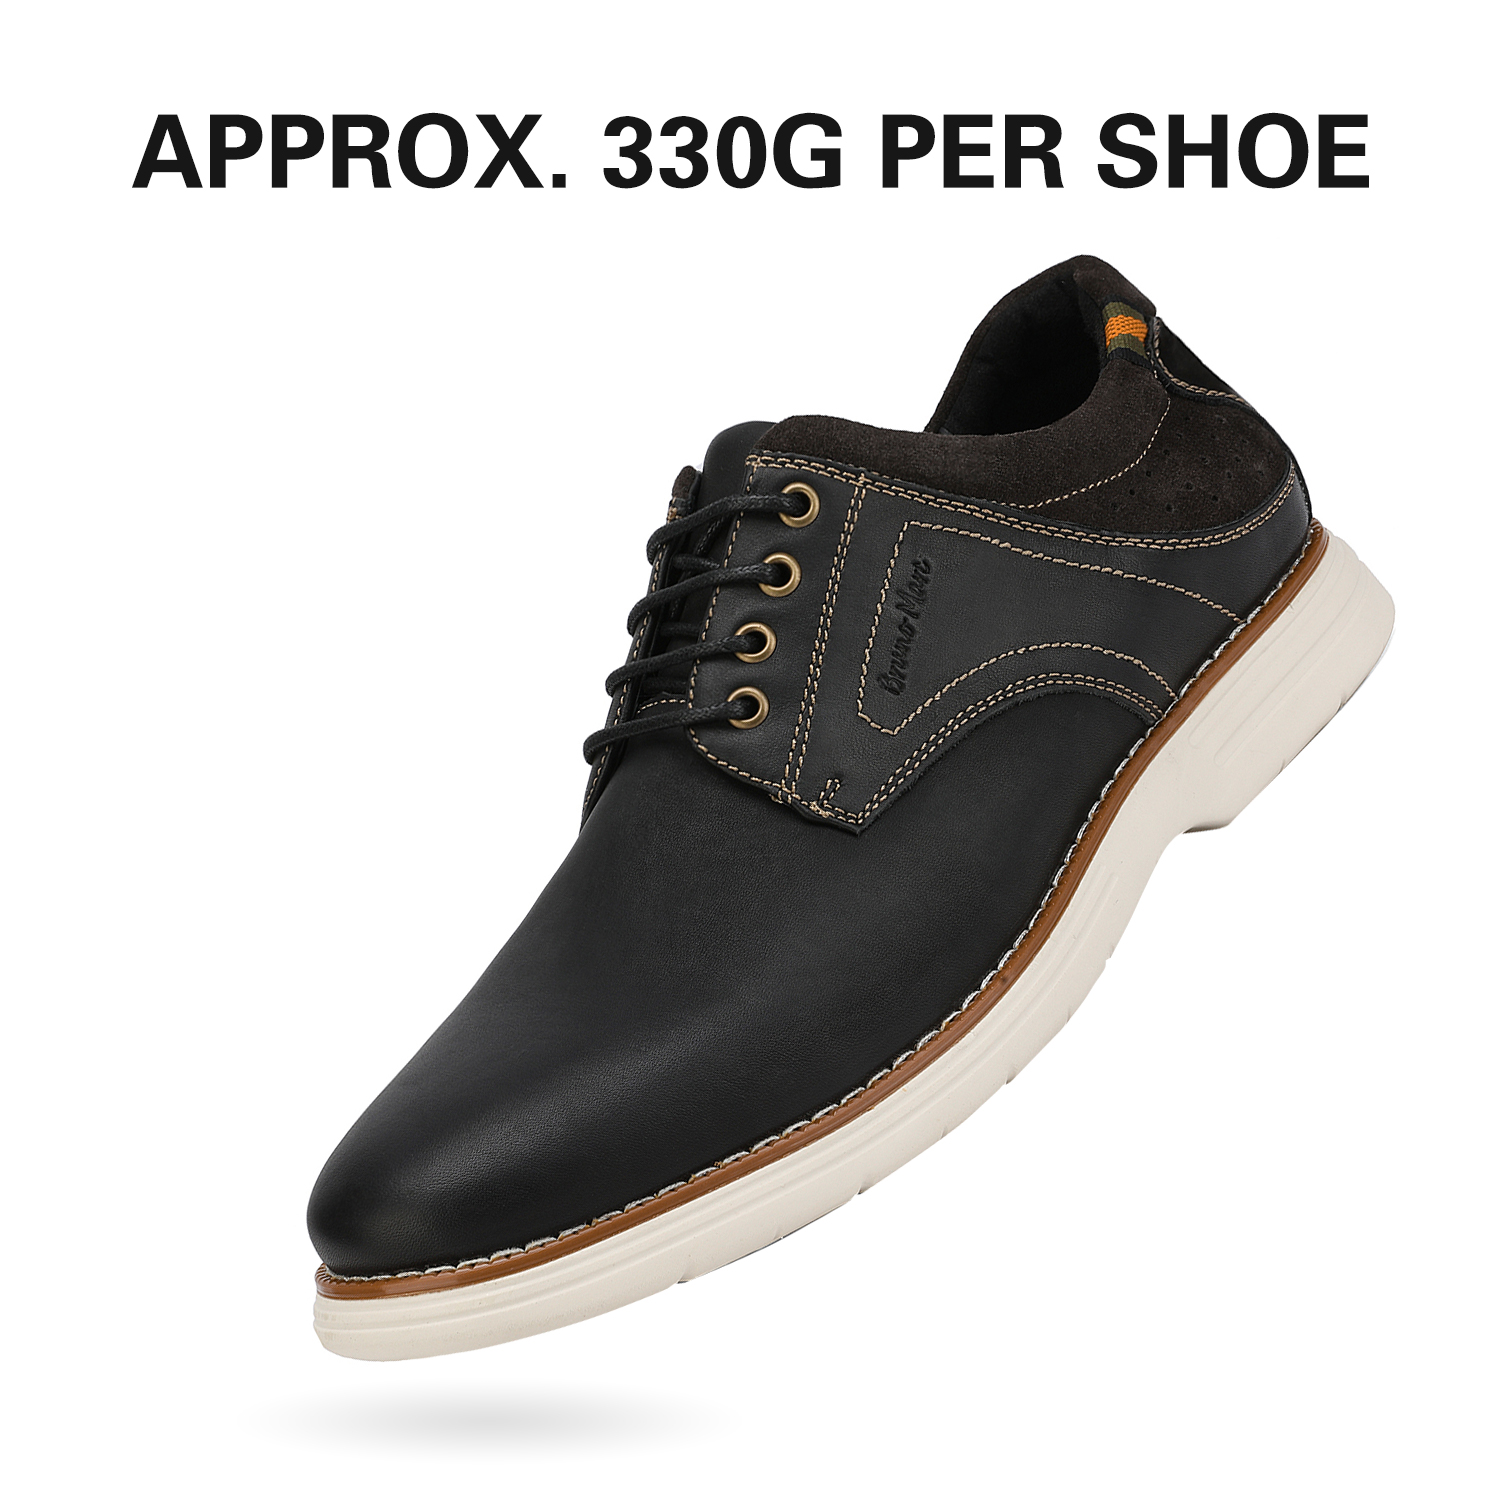 Mens-Fashion-Genuine-Leather-Business-Dress-Sneakers-Casual-Lace-up-Oxford-Shoe thumbnail 23